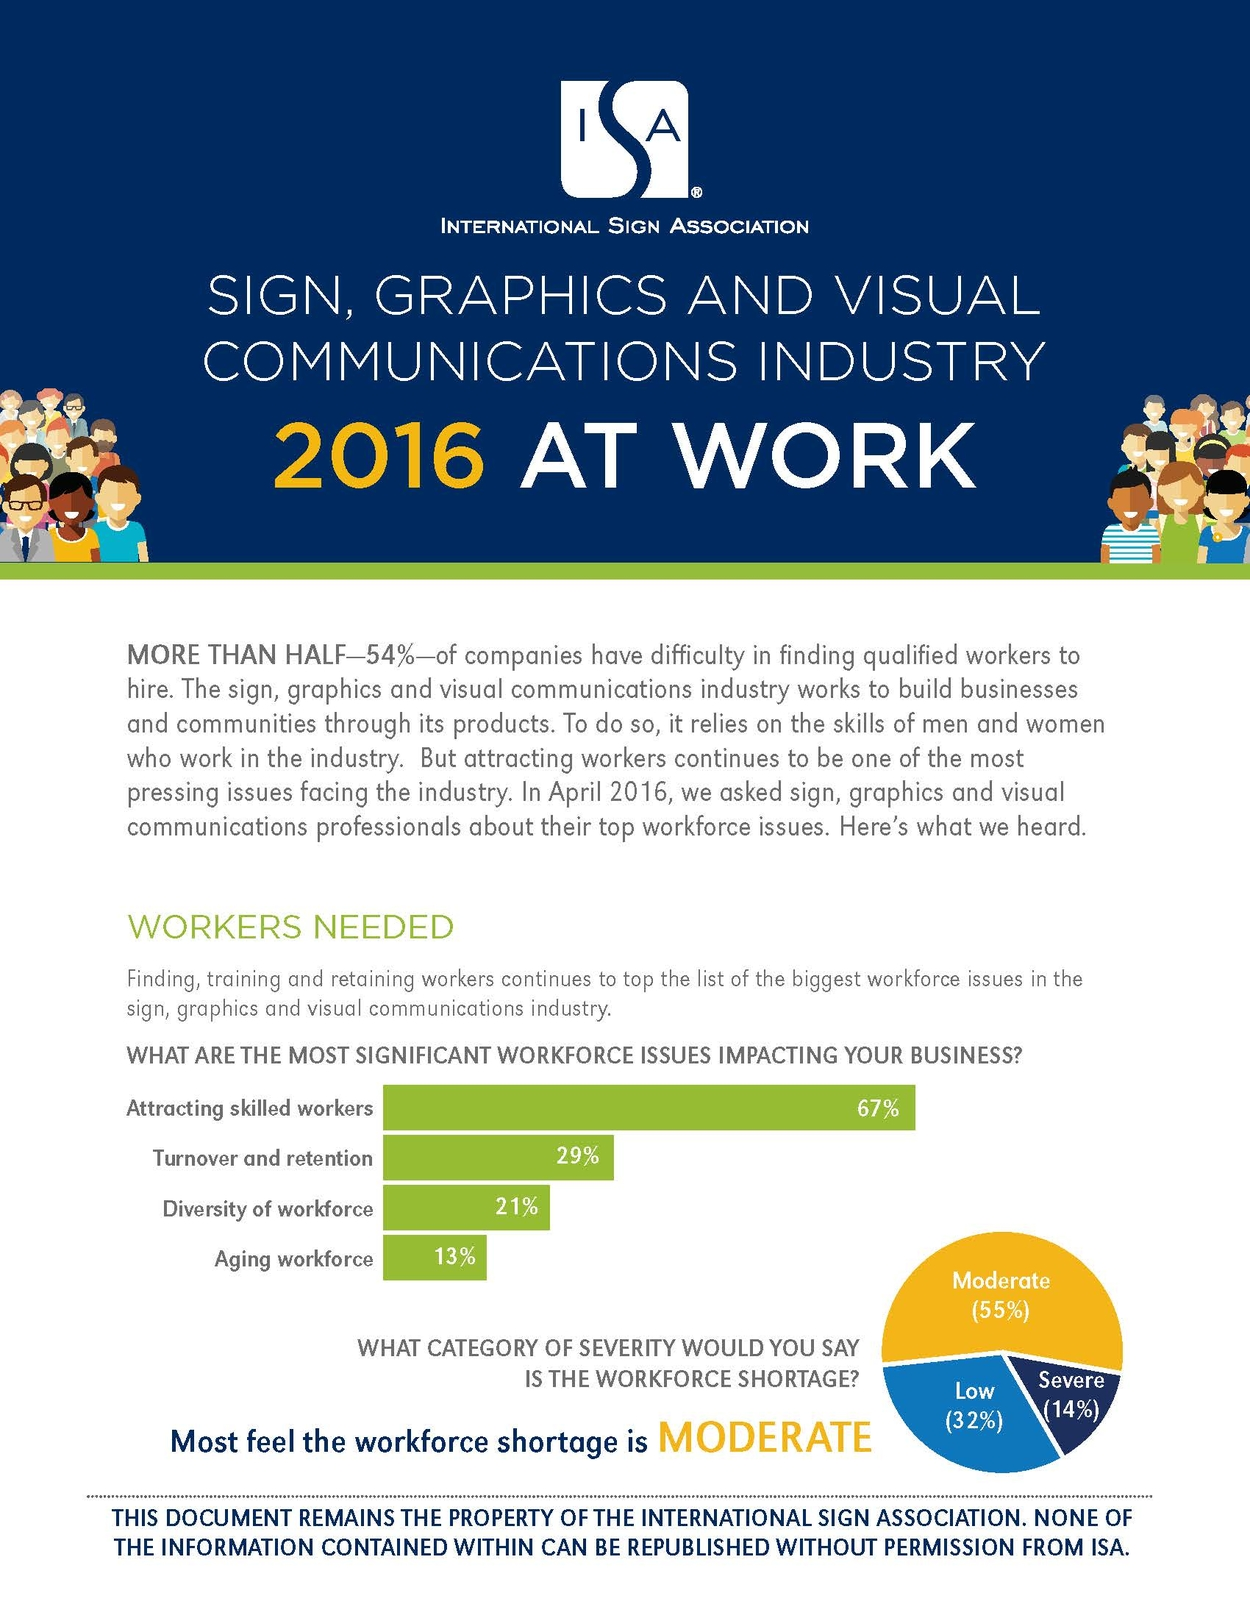 Sign Industry Statistics - International Sign Association